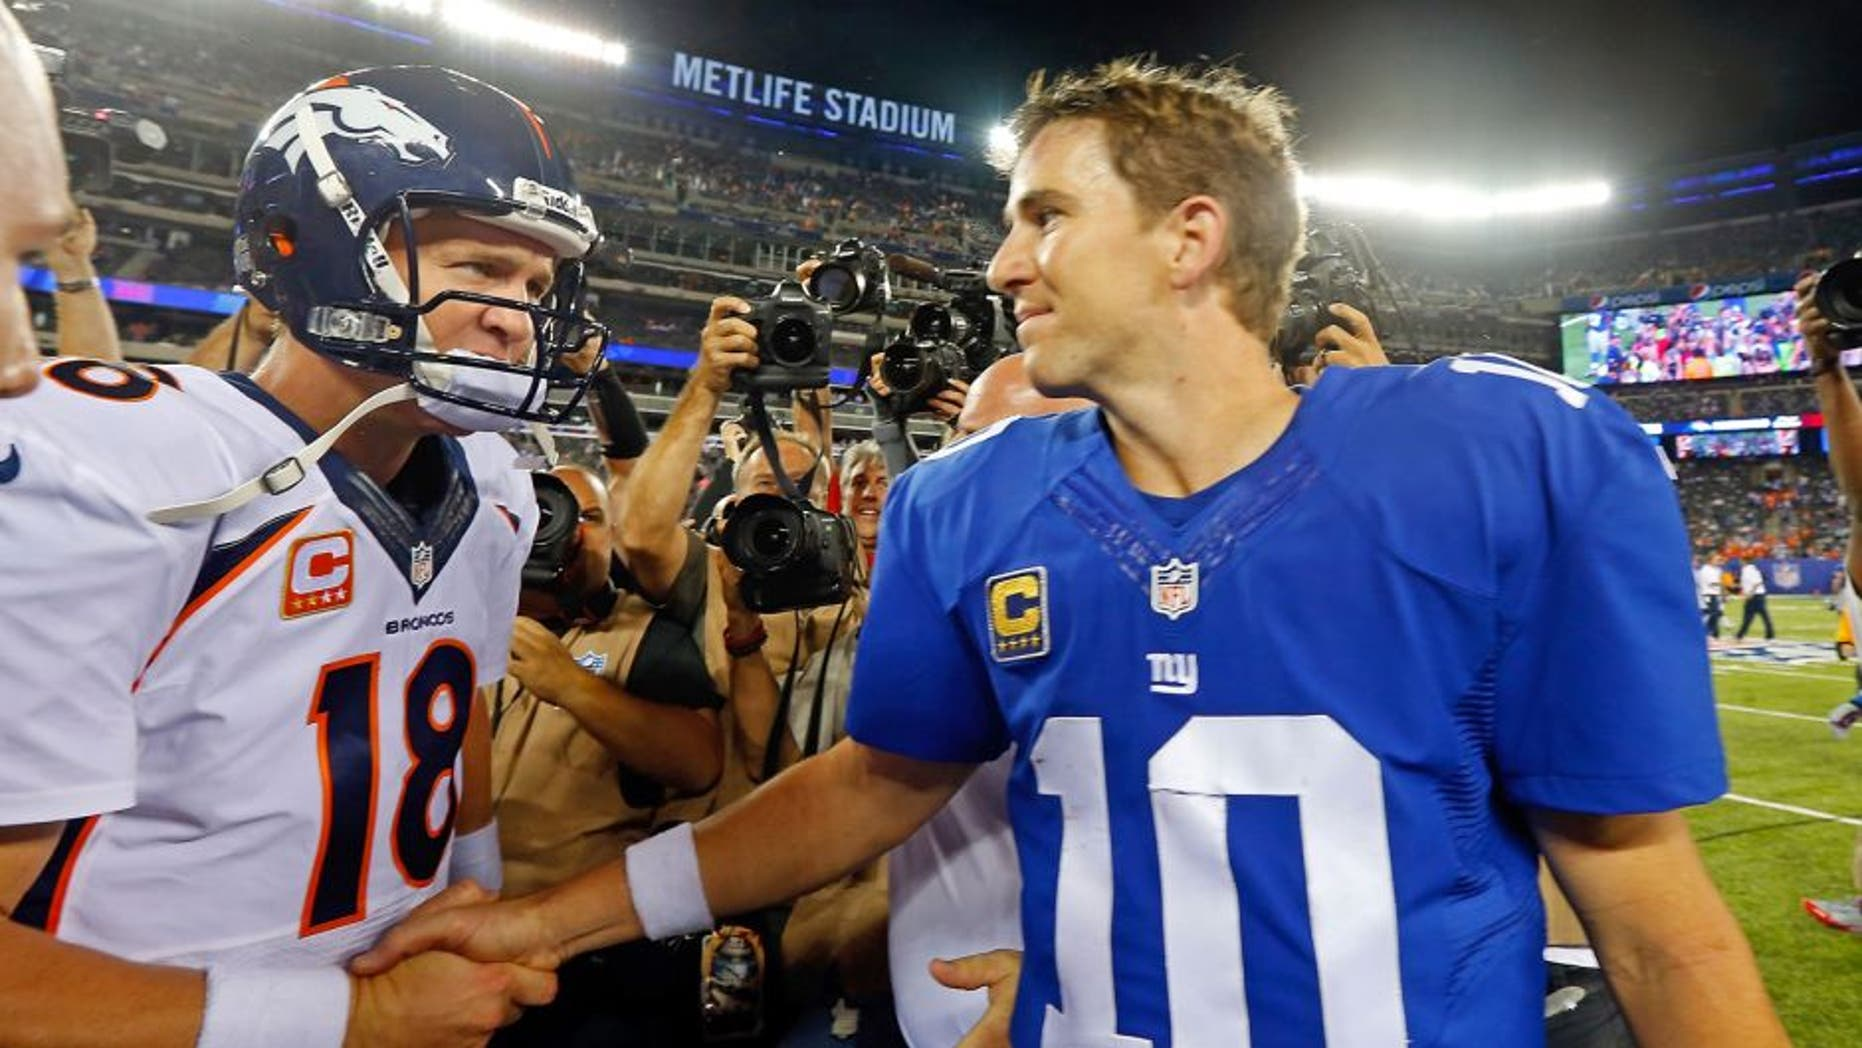 EAST RUTHERFORD, NJ - SEPTEMBER 15: (NEW YORK DAILIES OUT) Quarterbacks Peyton Manning #18 of the Denver Broncos and Eli Manning #10 of the New York Giants meet after their game on September 15, 2013 at MetLife Stadium in East Rutherford, New Jersey. The Broncos defeated the Giants 41-23. (Photo by Jim McIsaac/Getty Images)